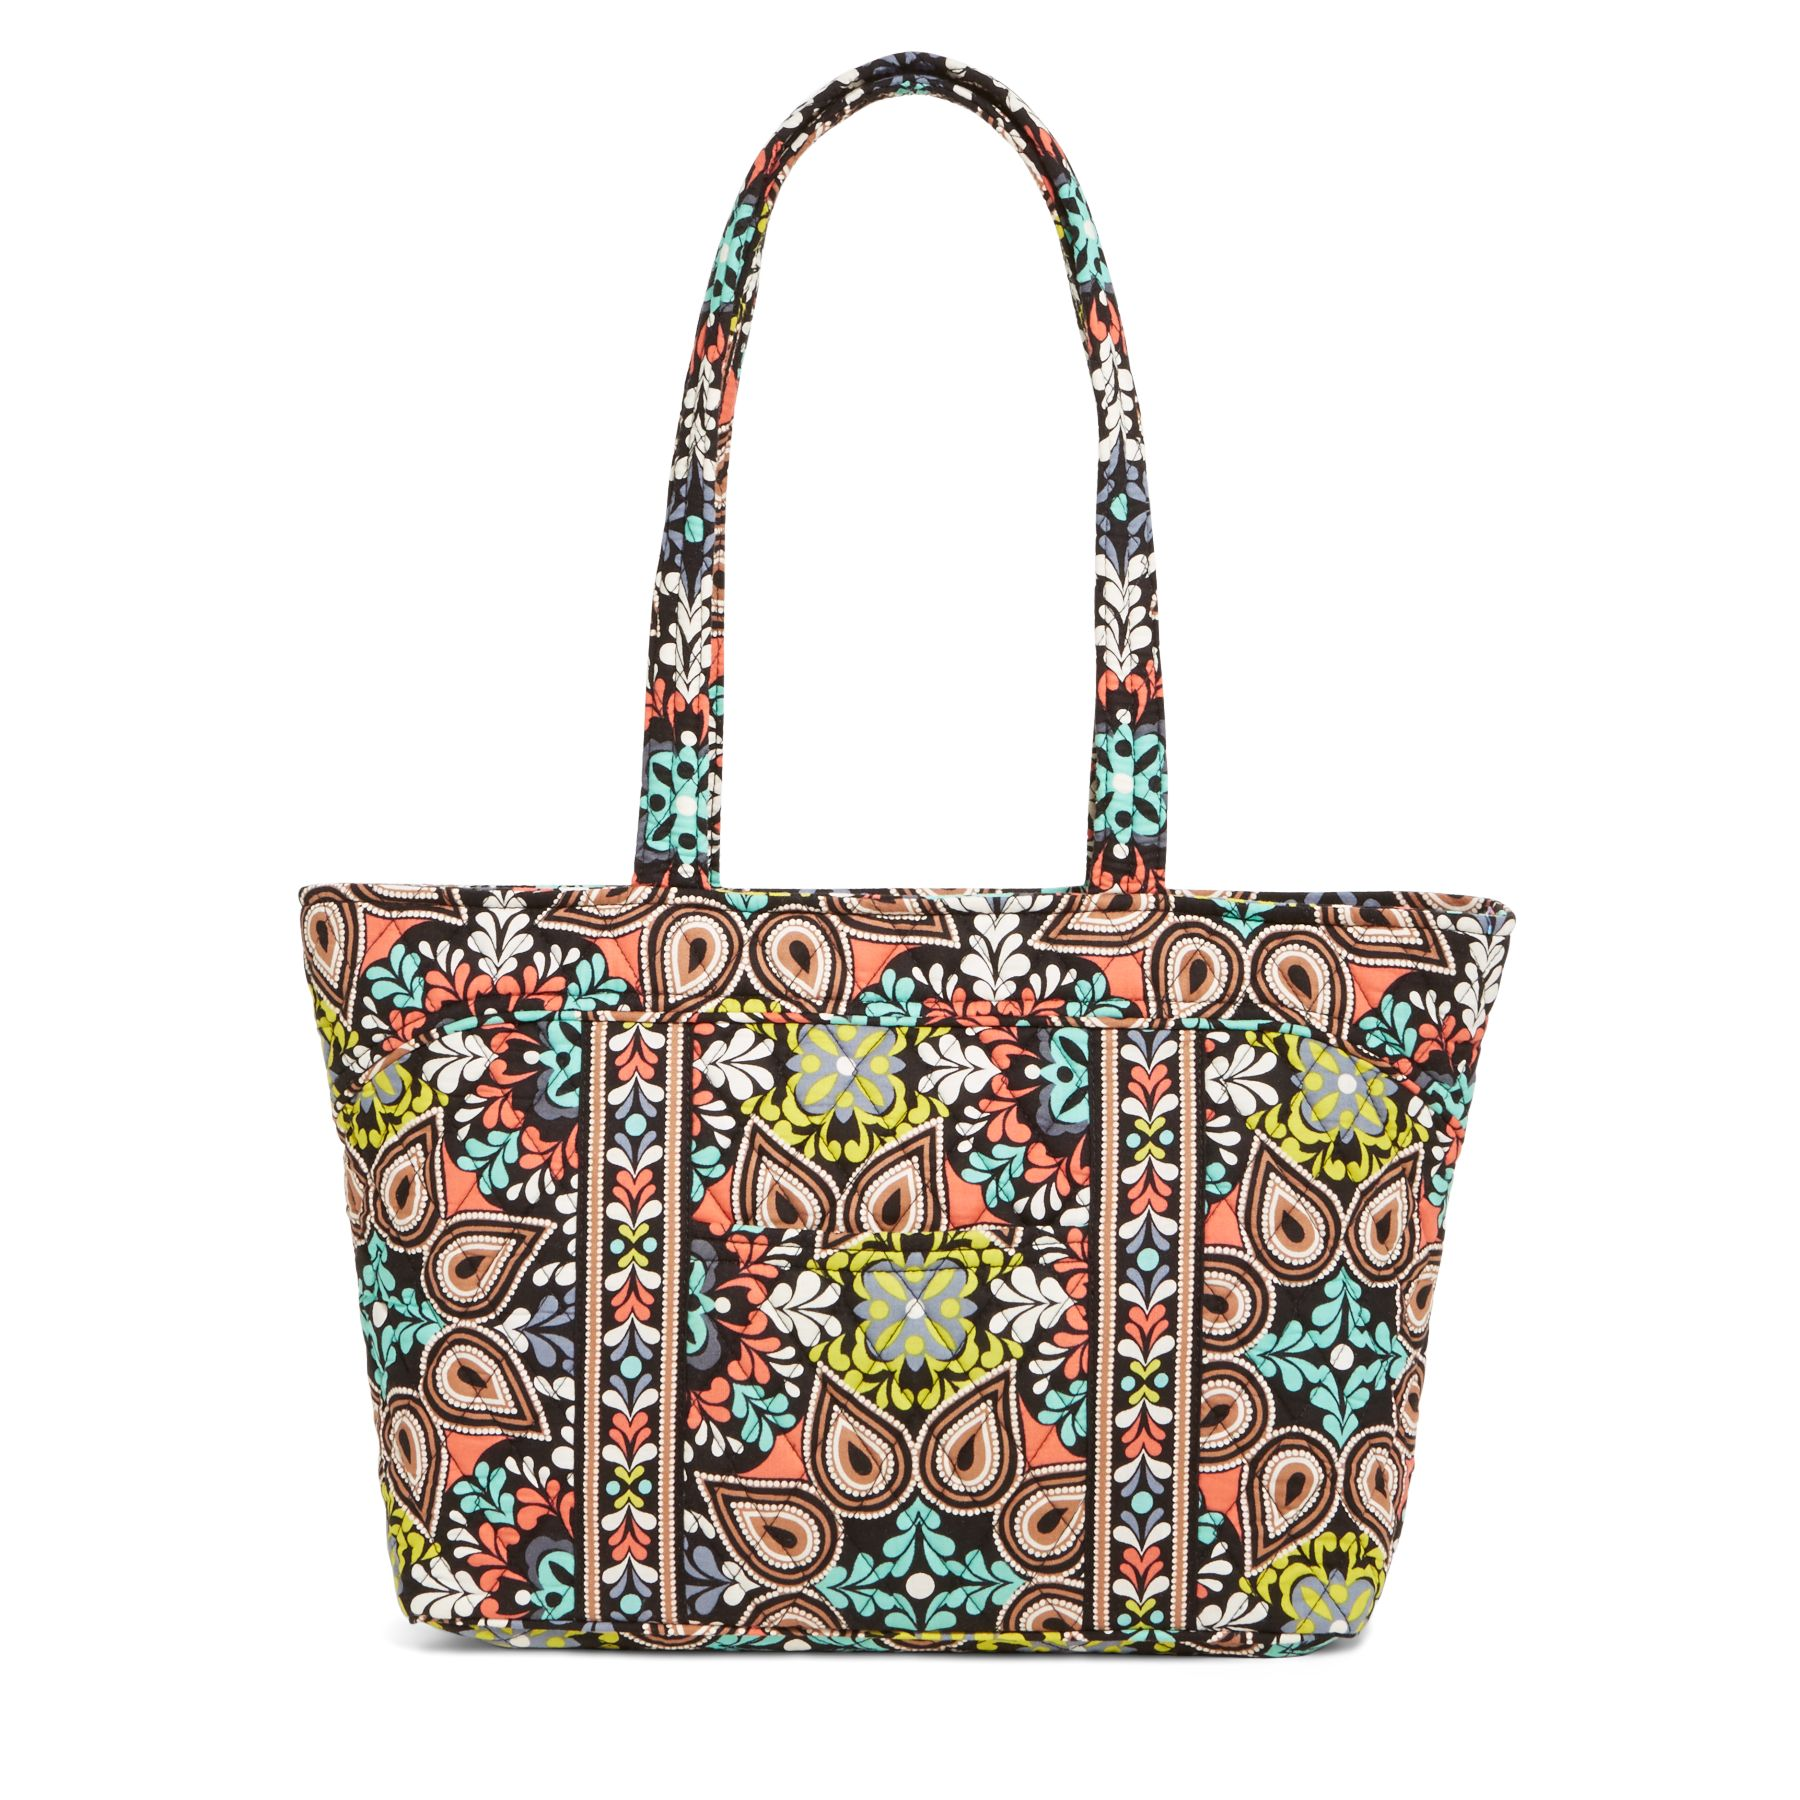 Vera Bradley Mandy Shoulder Bag in Sierra